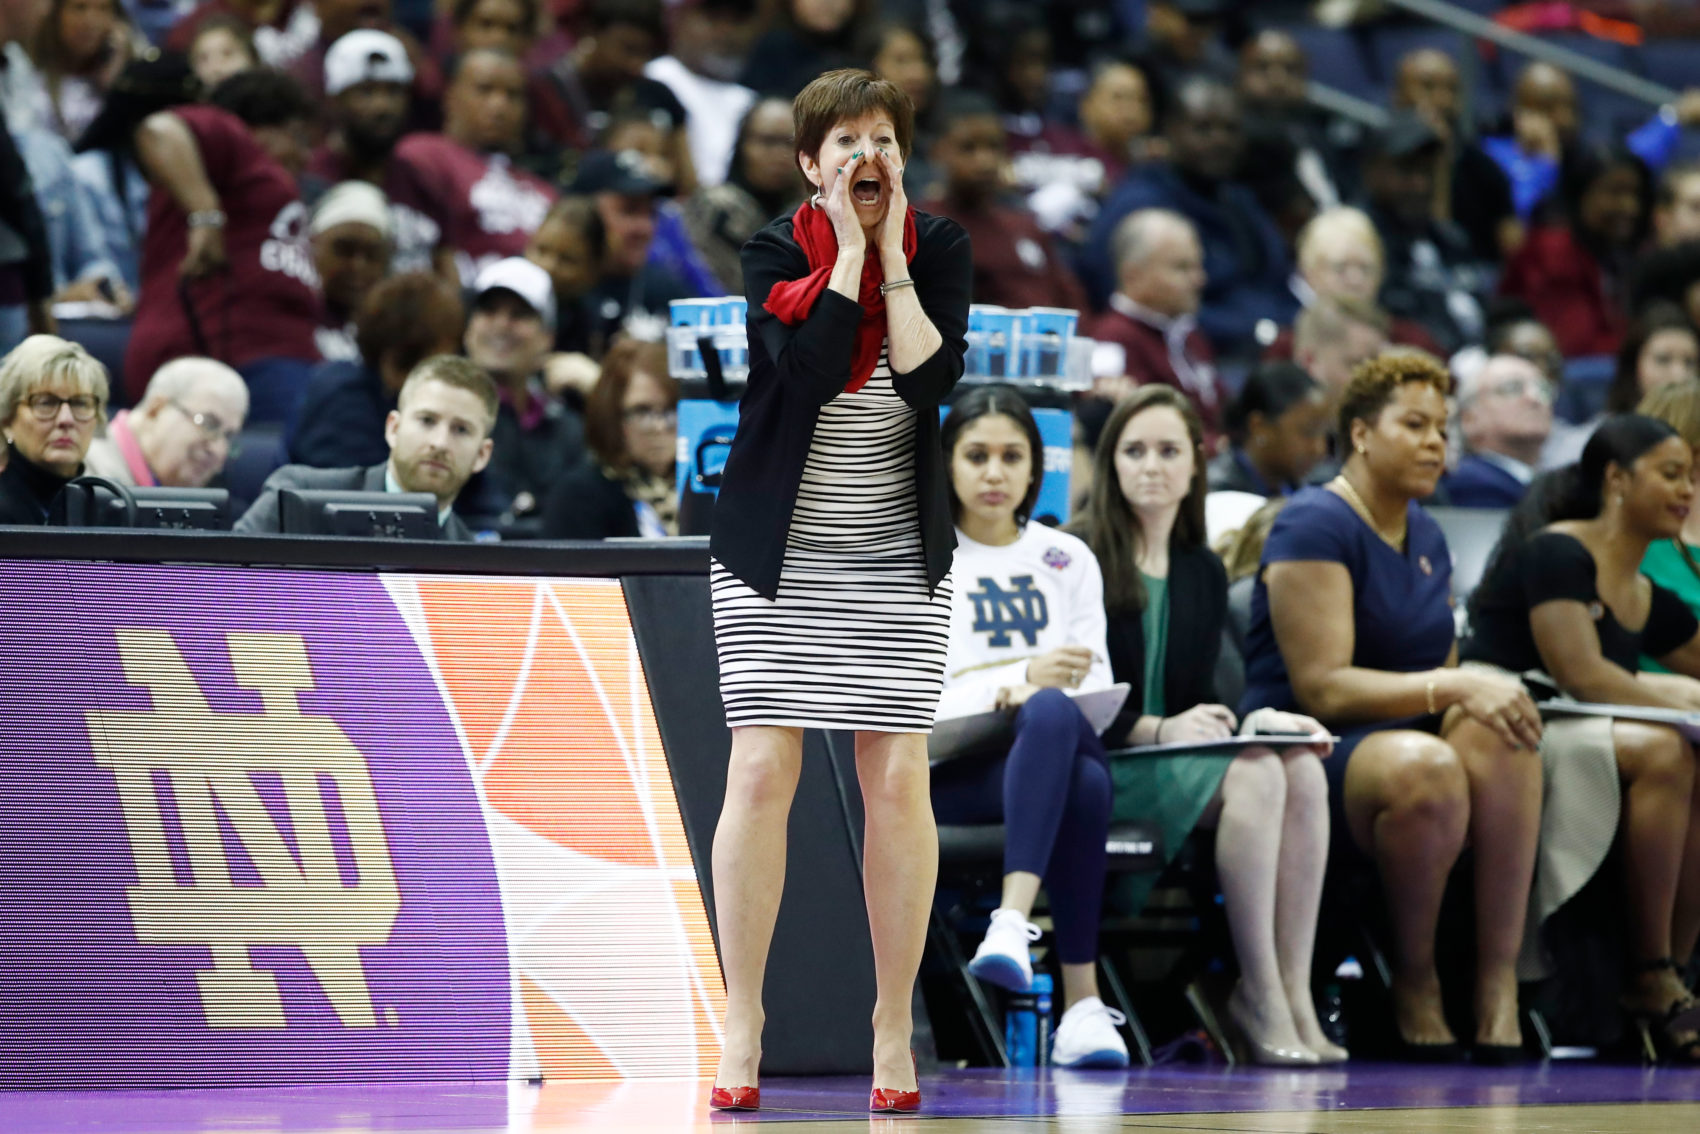 Muffet McGraw has won two national championships as the head coach of the Notre Dame women's basketball team. (Andy Lyons/Getty Images)